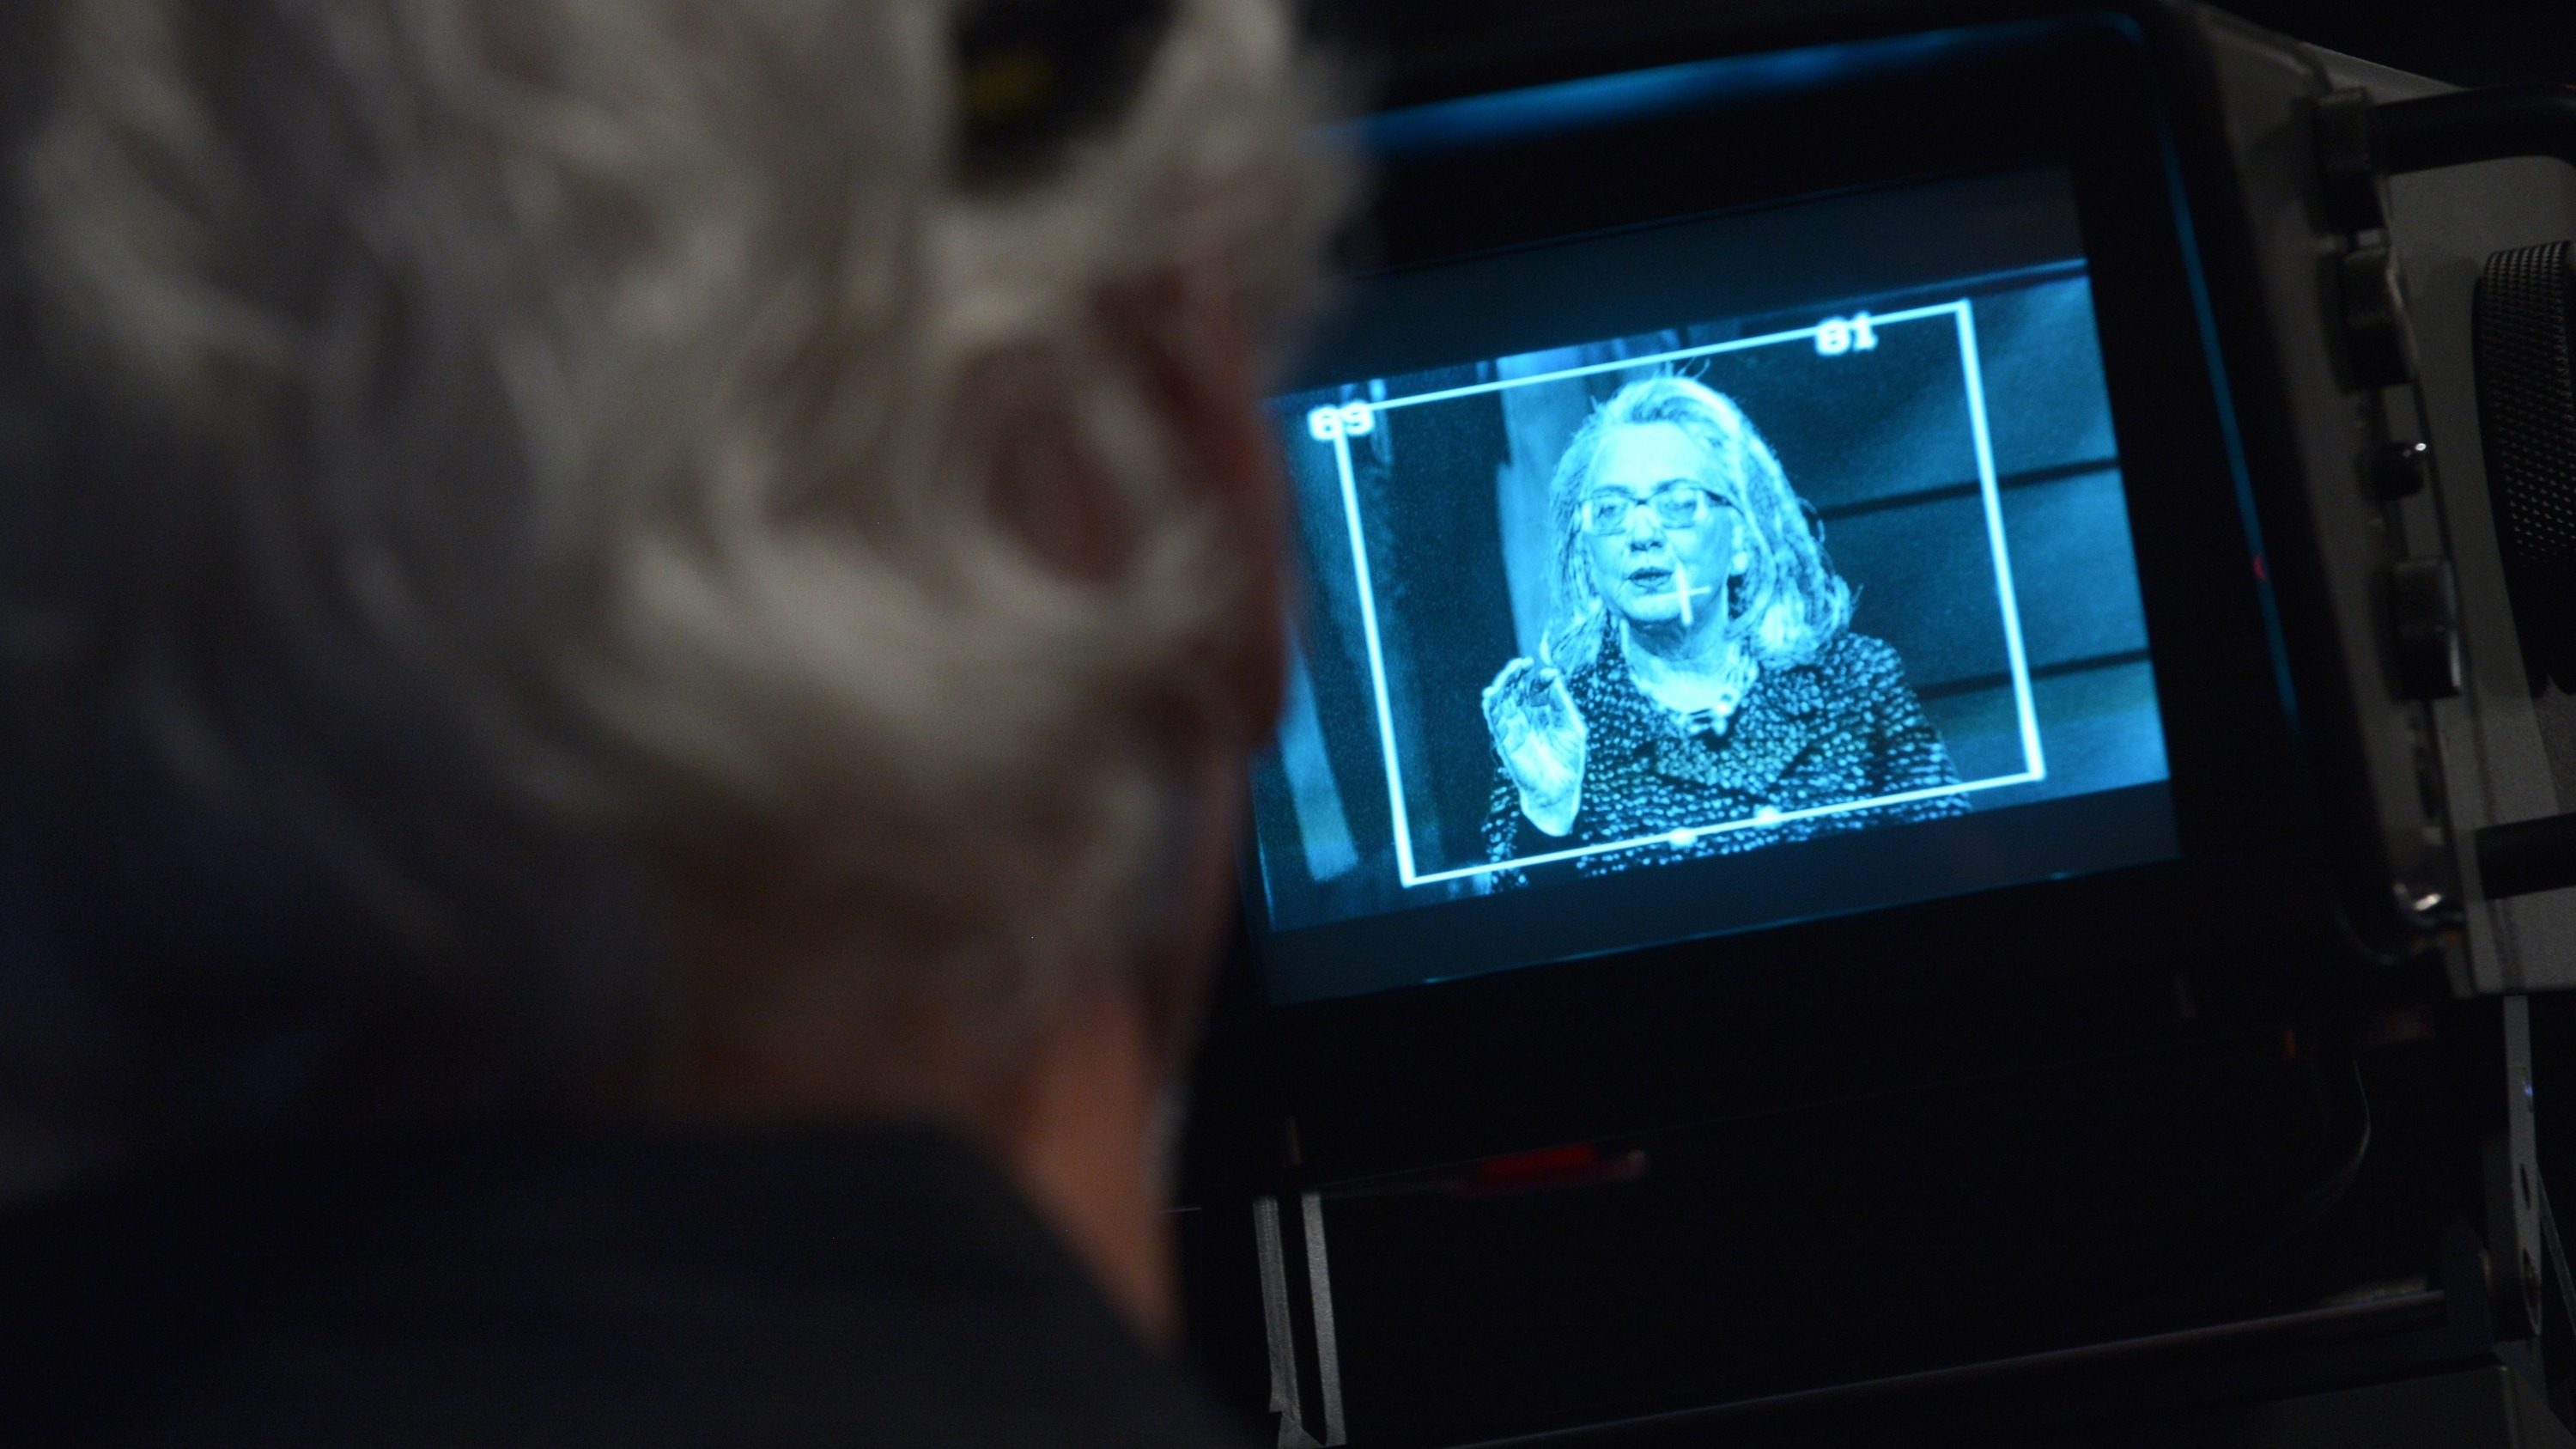 Hillary Clinton, seen on a TV camera monitor in 2013, has been criticized for not holding more press conferences. Mandel Ngan/AFP/Getty Images